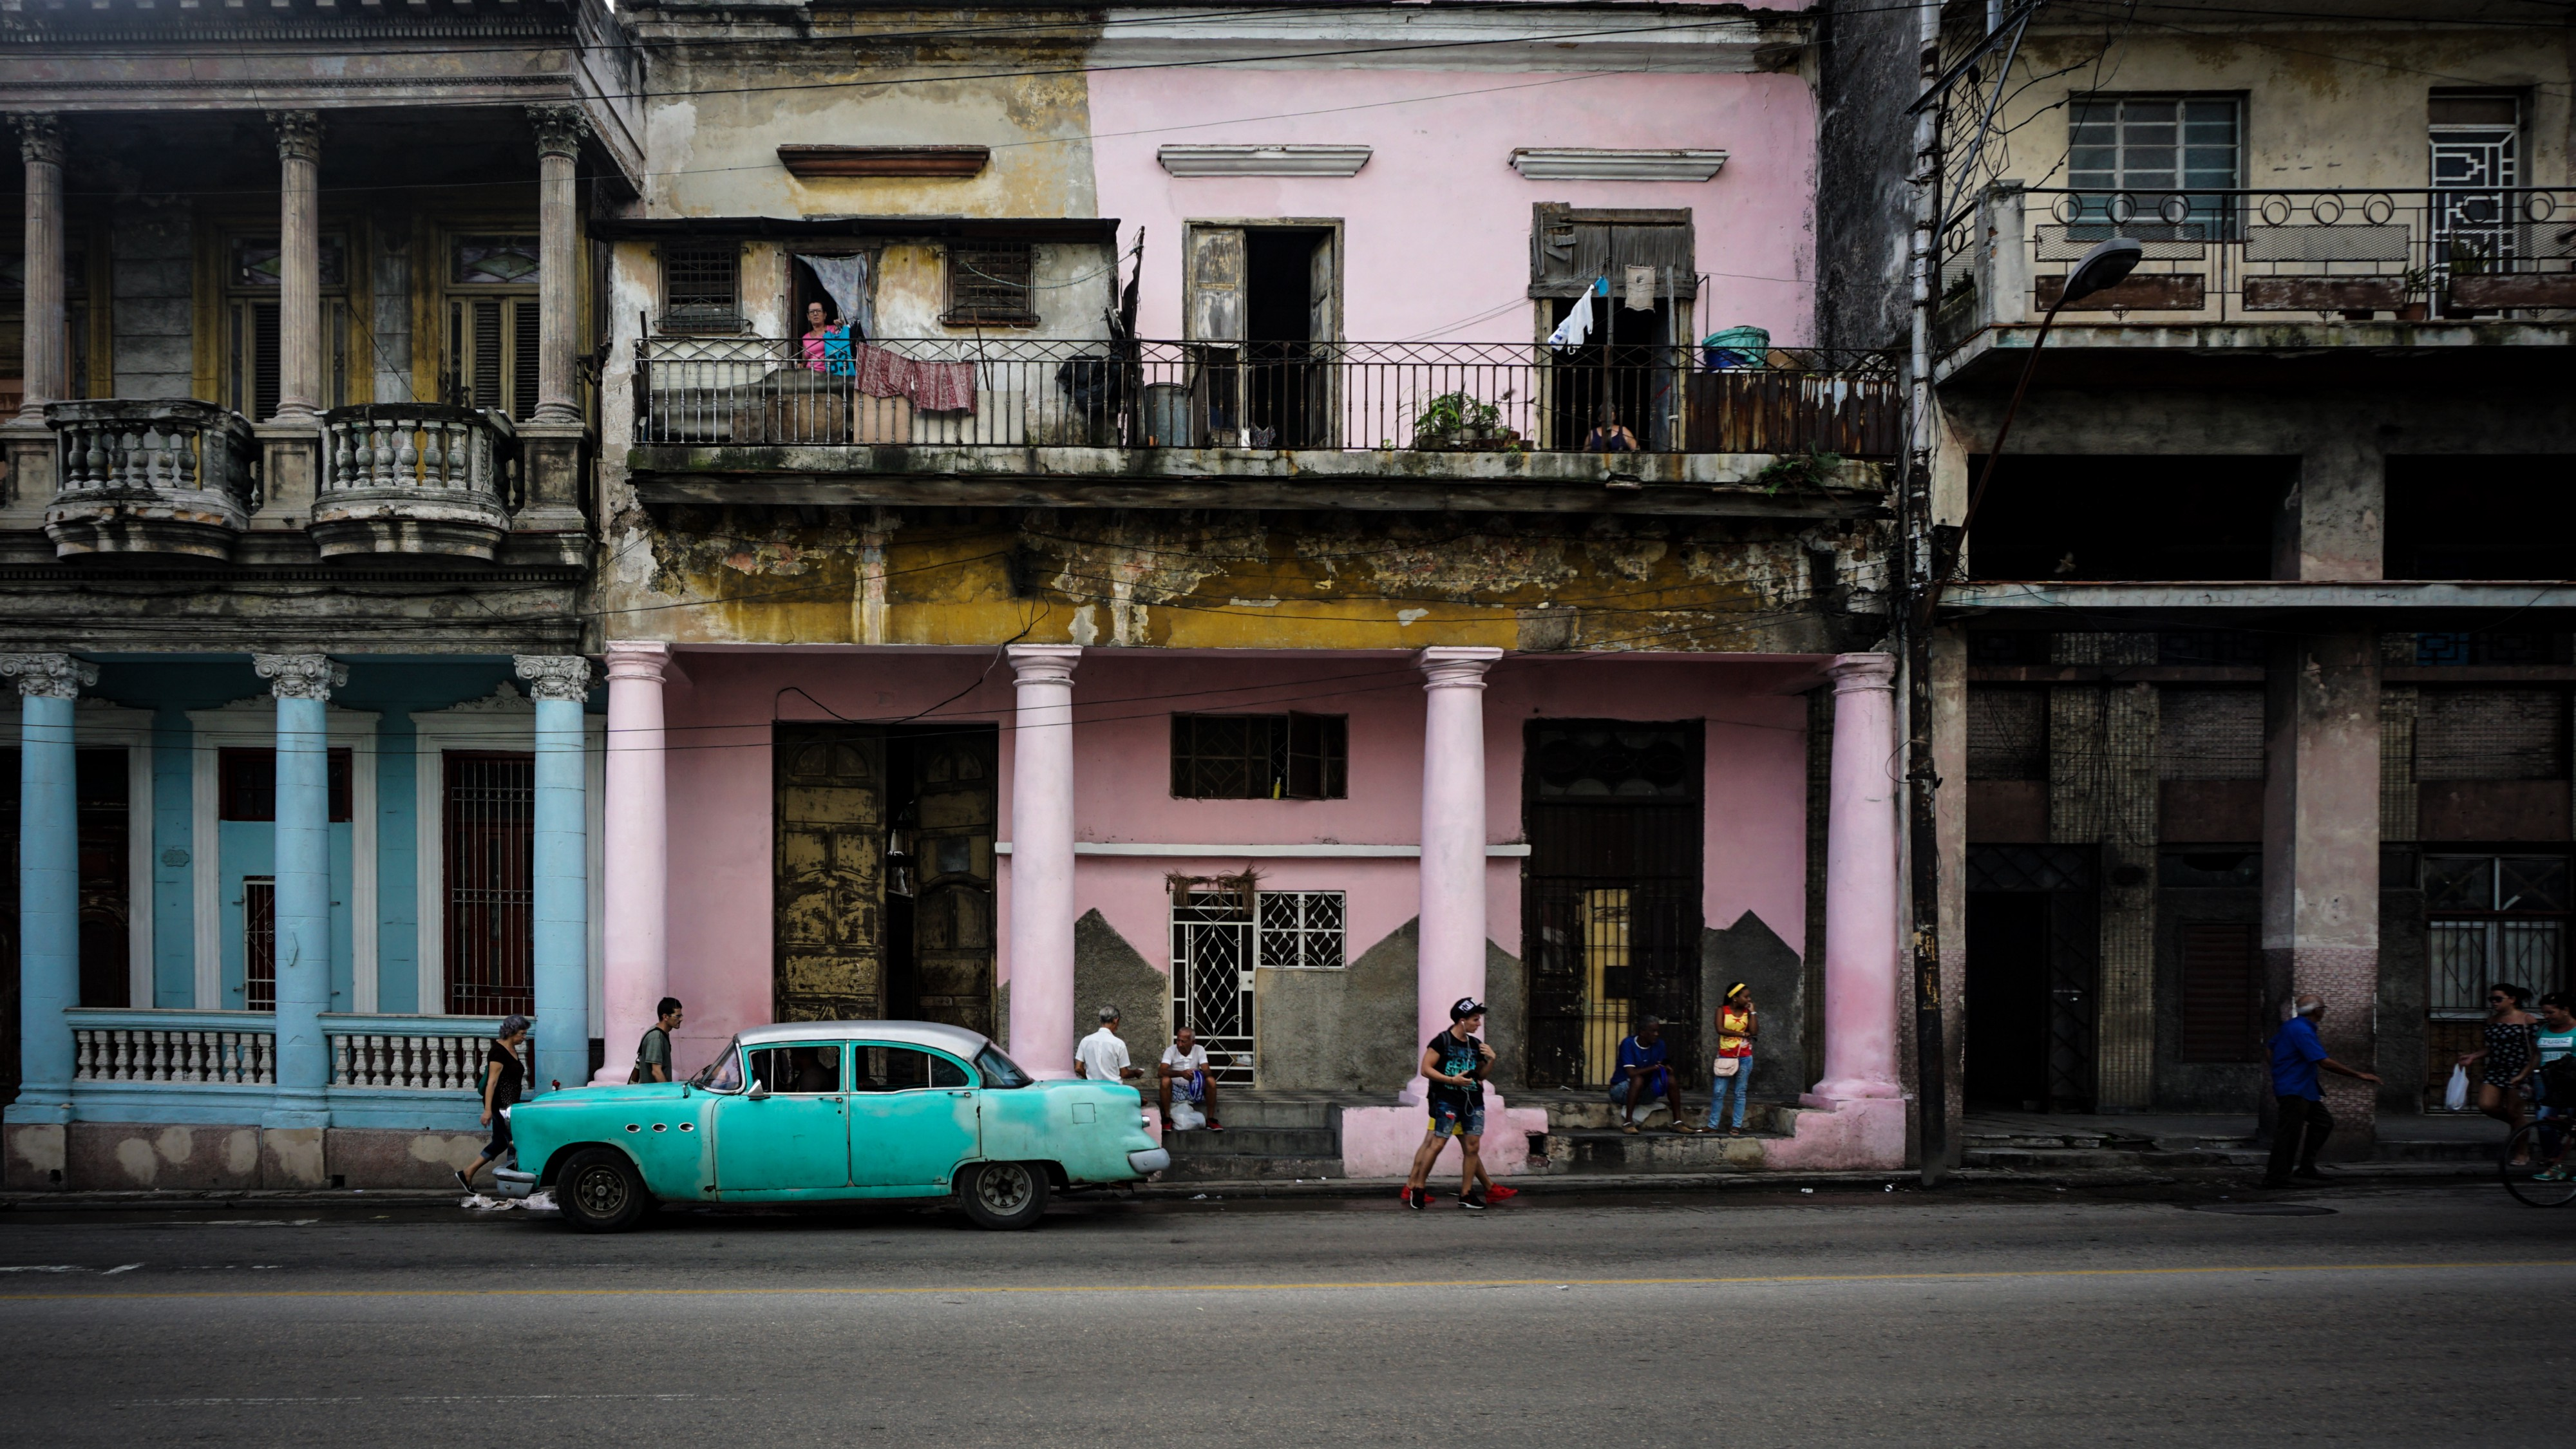 A Caribbean street with colourful houses and an old car parked on the road.